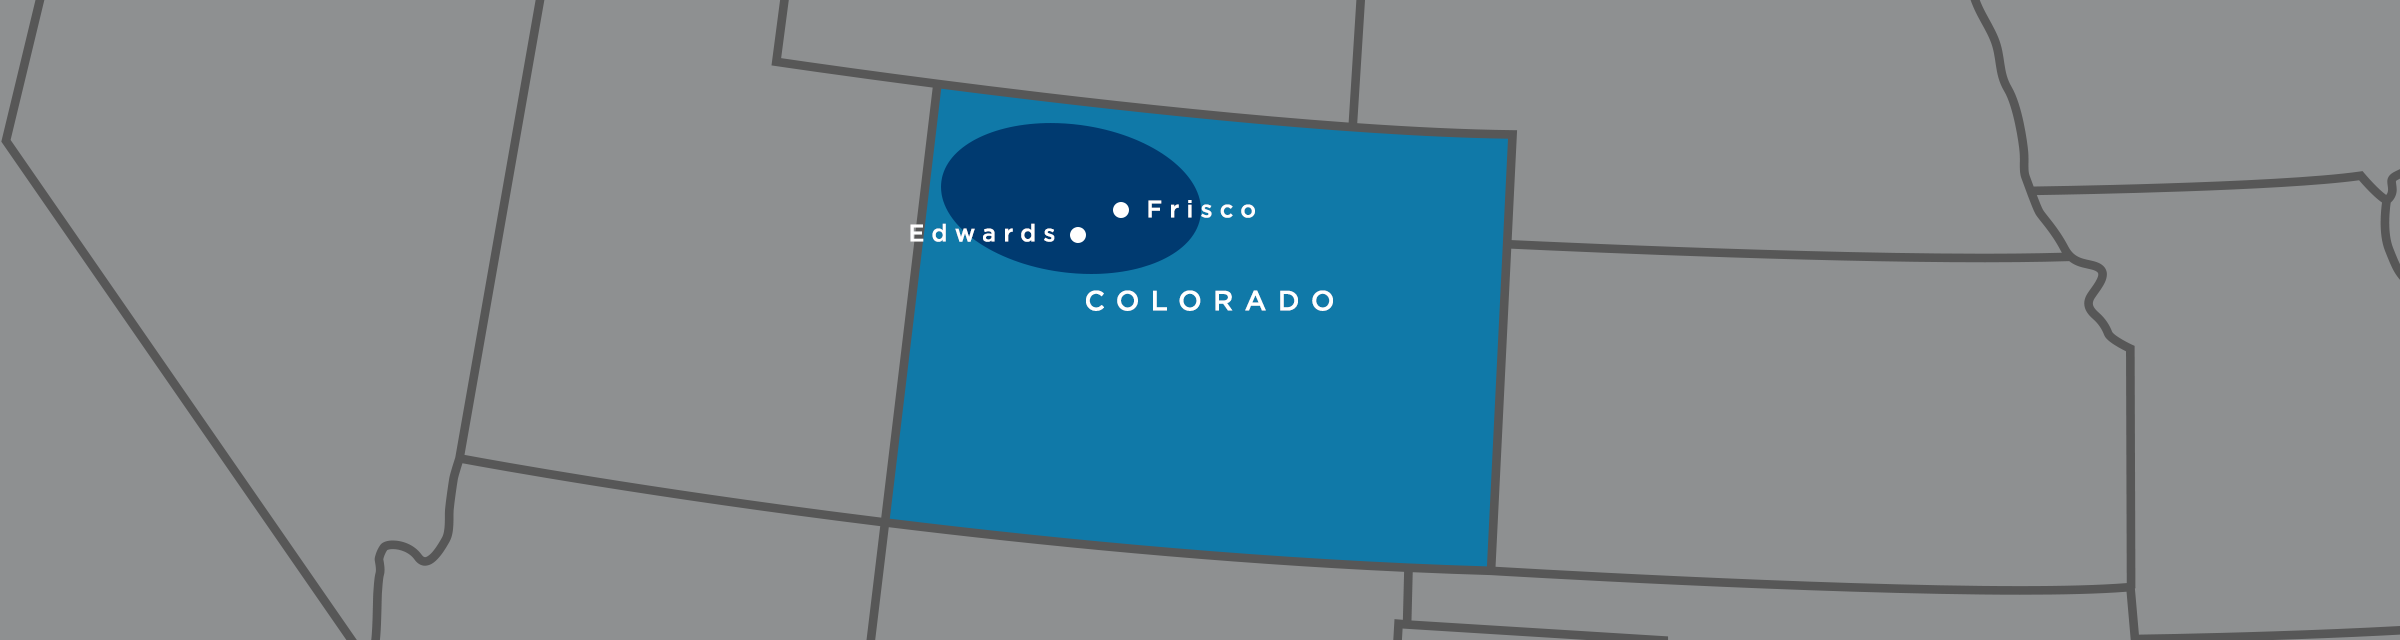 colorado mountain region